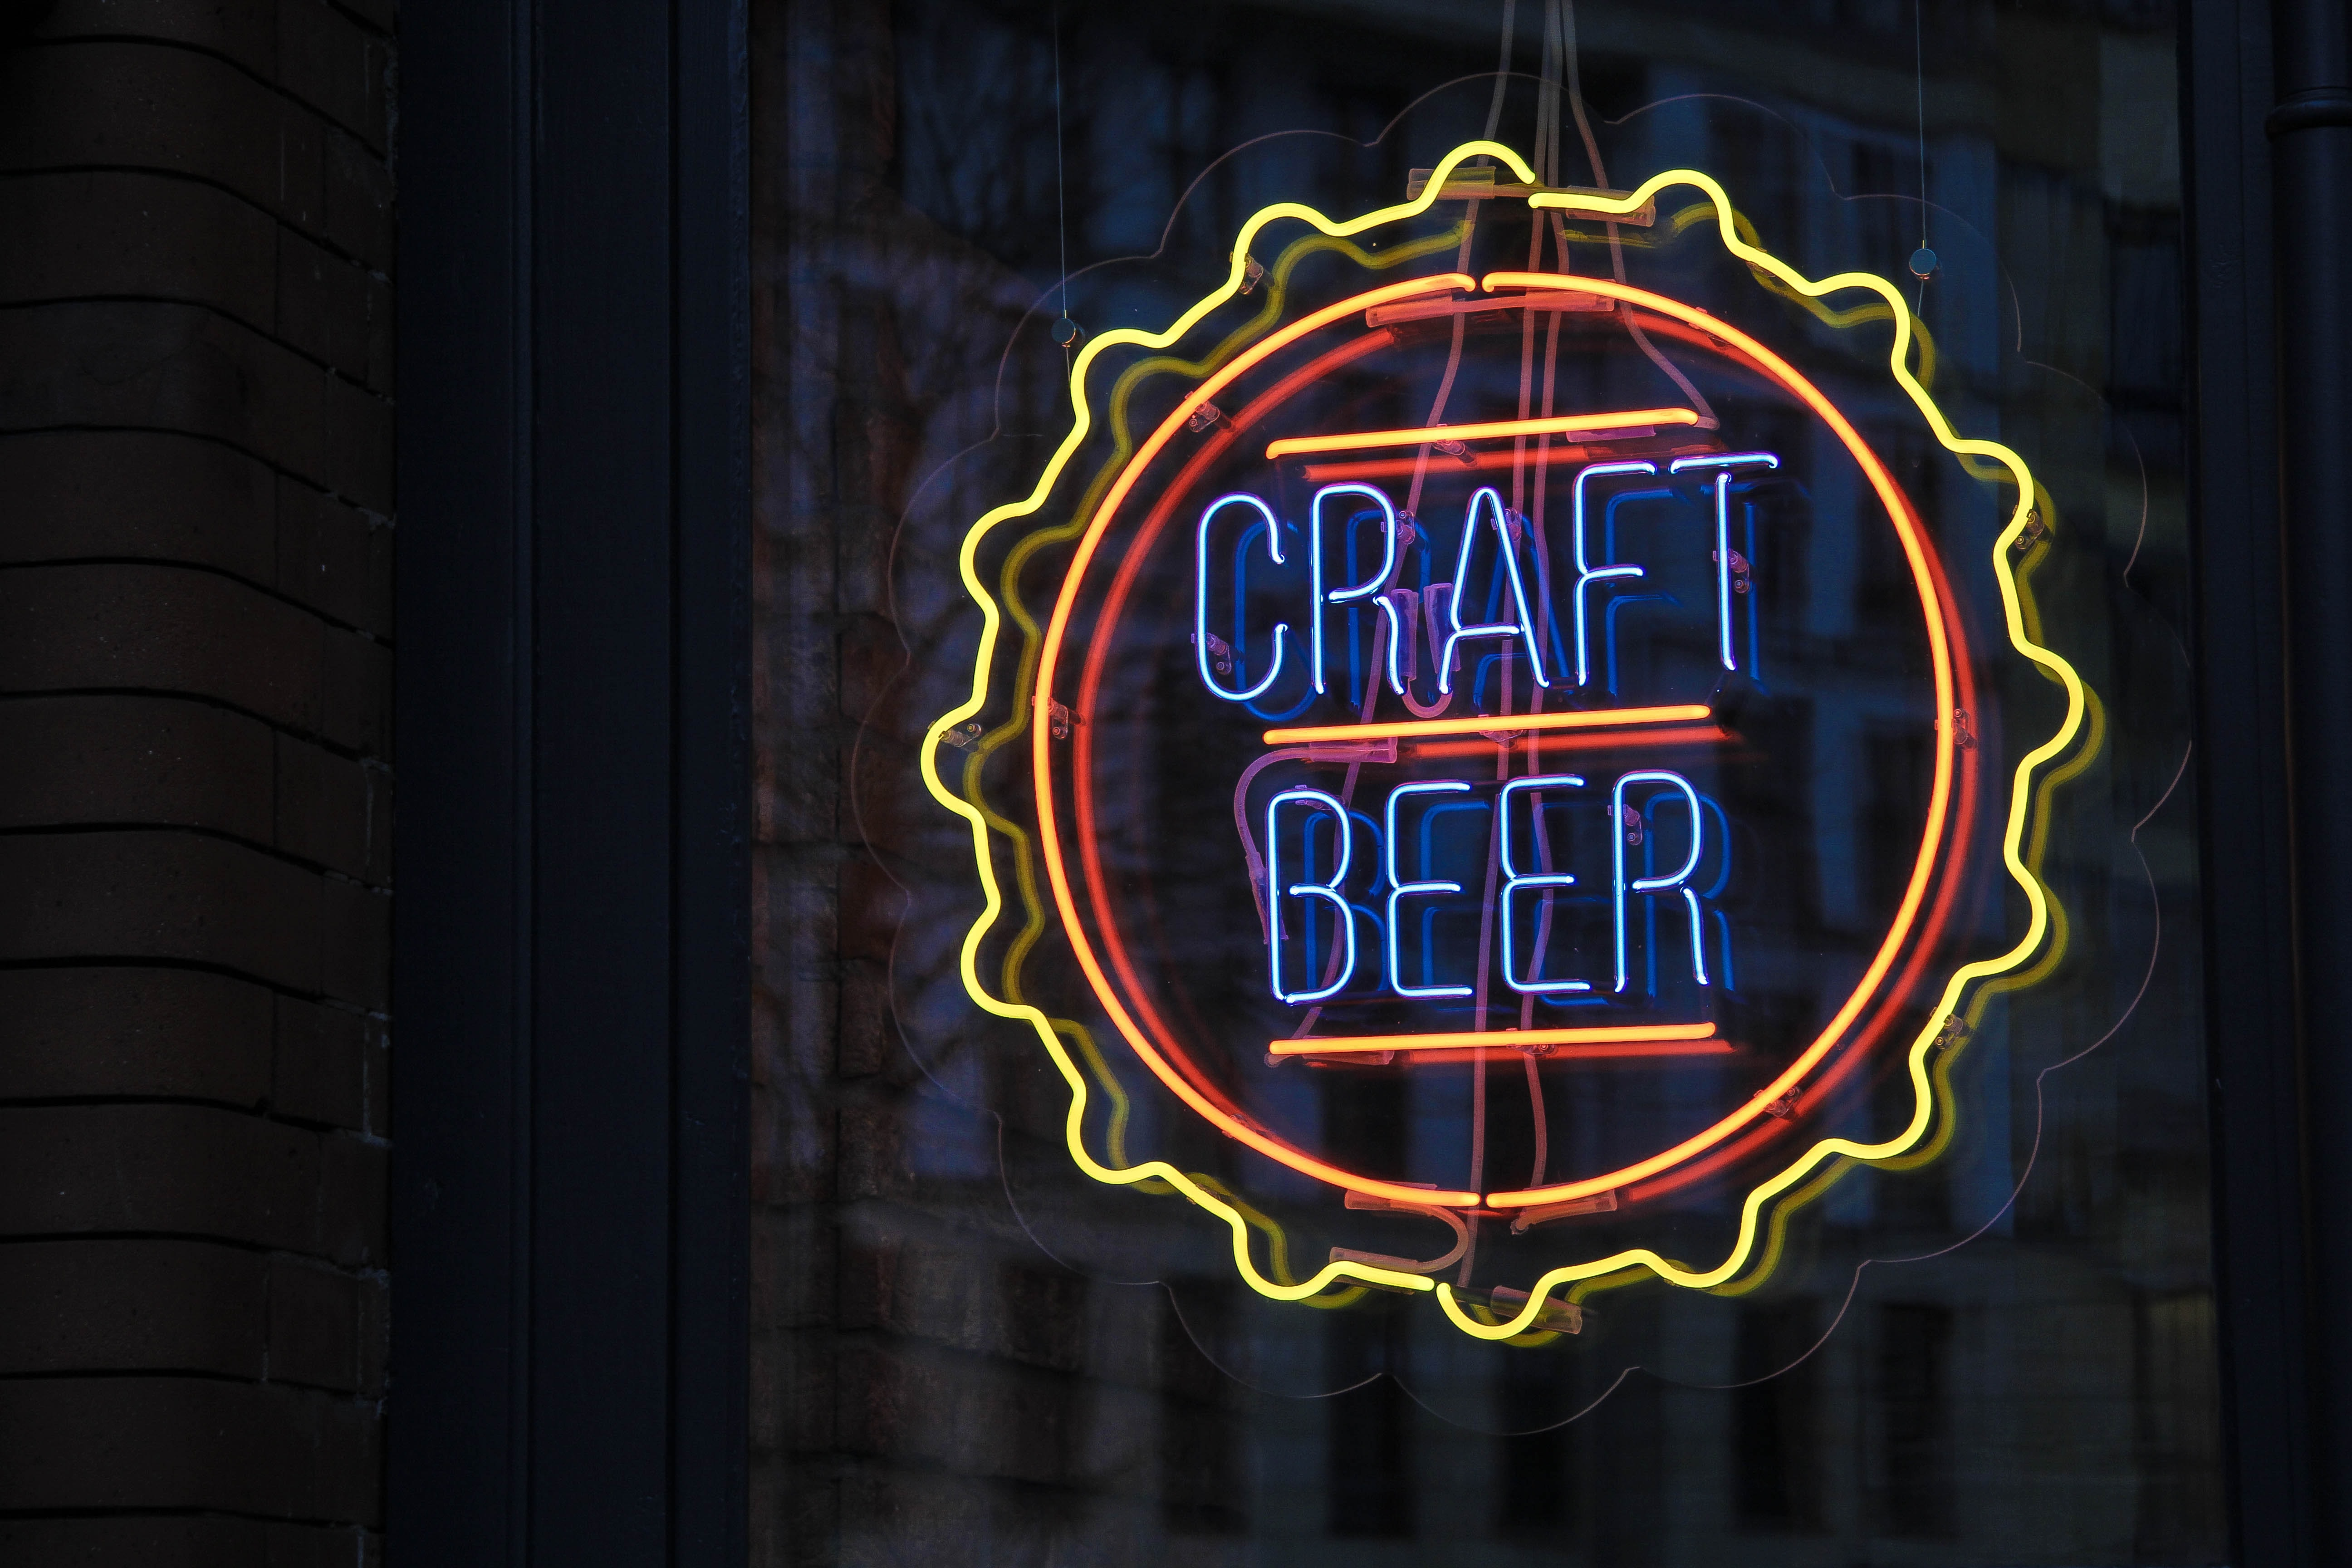 blue, yellow, and red Craft Beer lighted signage